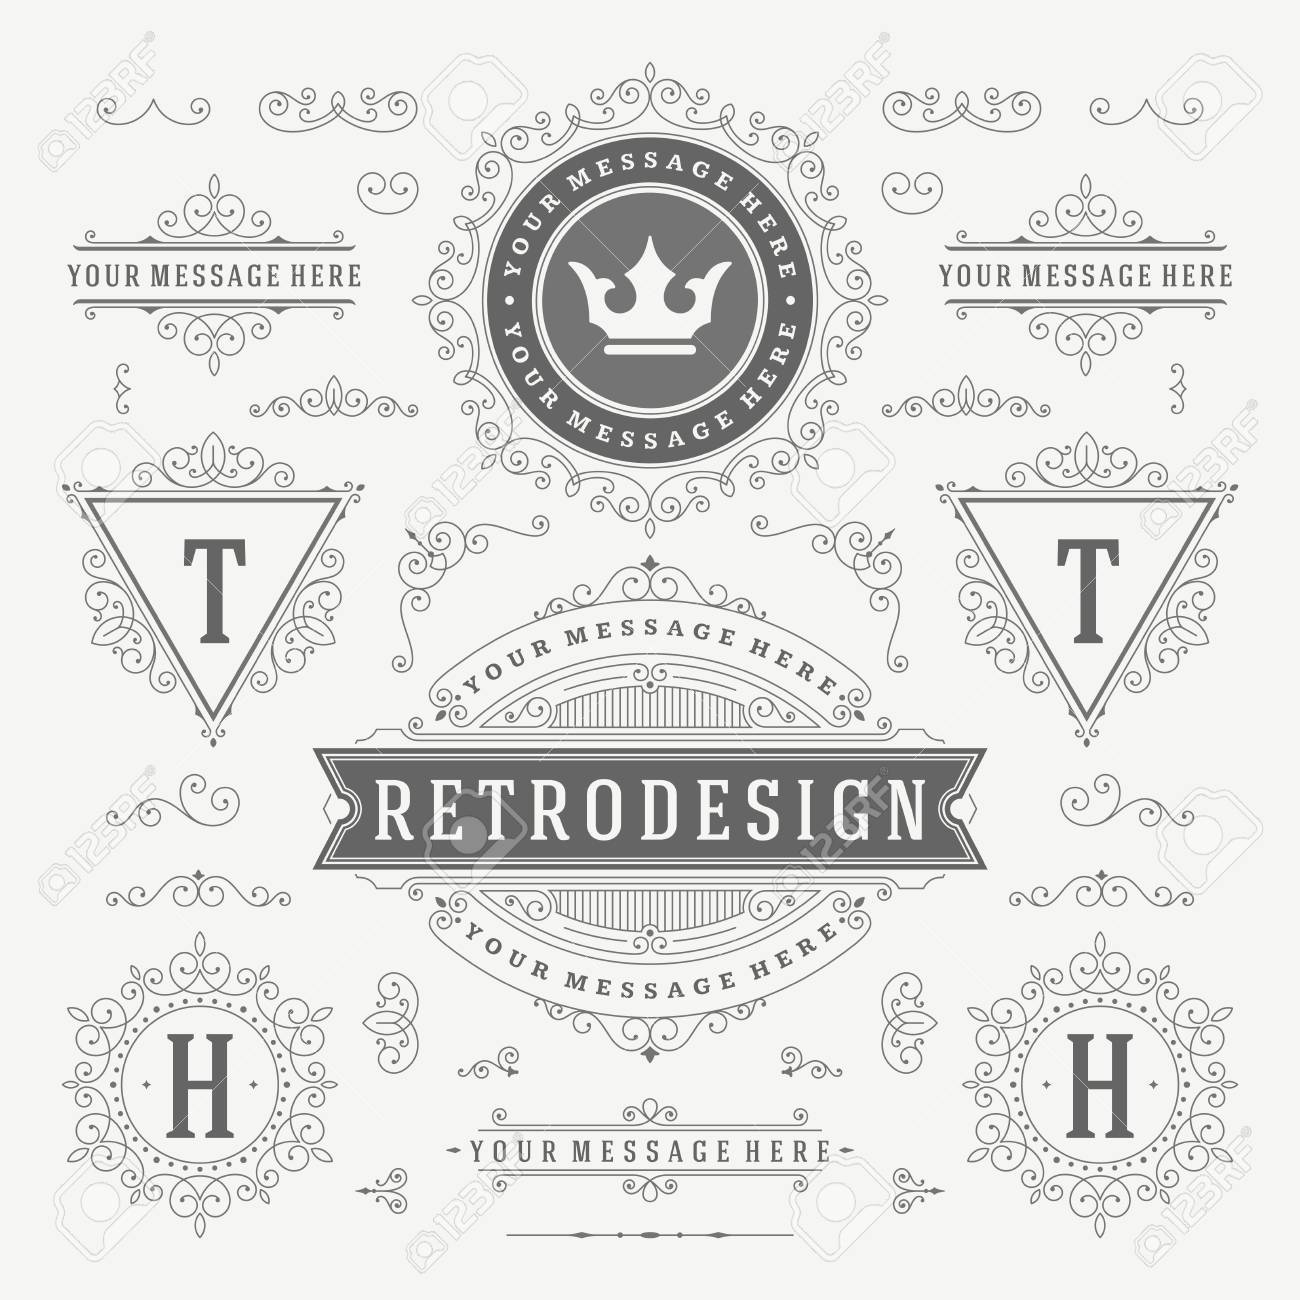 Vintage Vector Ornaments Decorations Design Elements. Flourishes calligraphic combinations retro for Invitations, Restaurant Menu, Royalty, Typography, Quotes, Greeting cards, Certificate and other. - 46168382